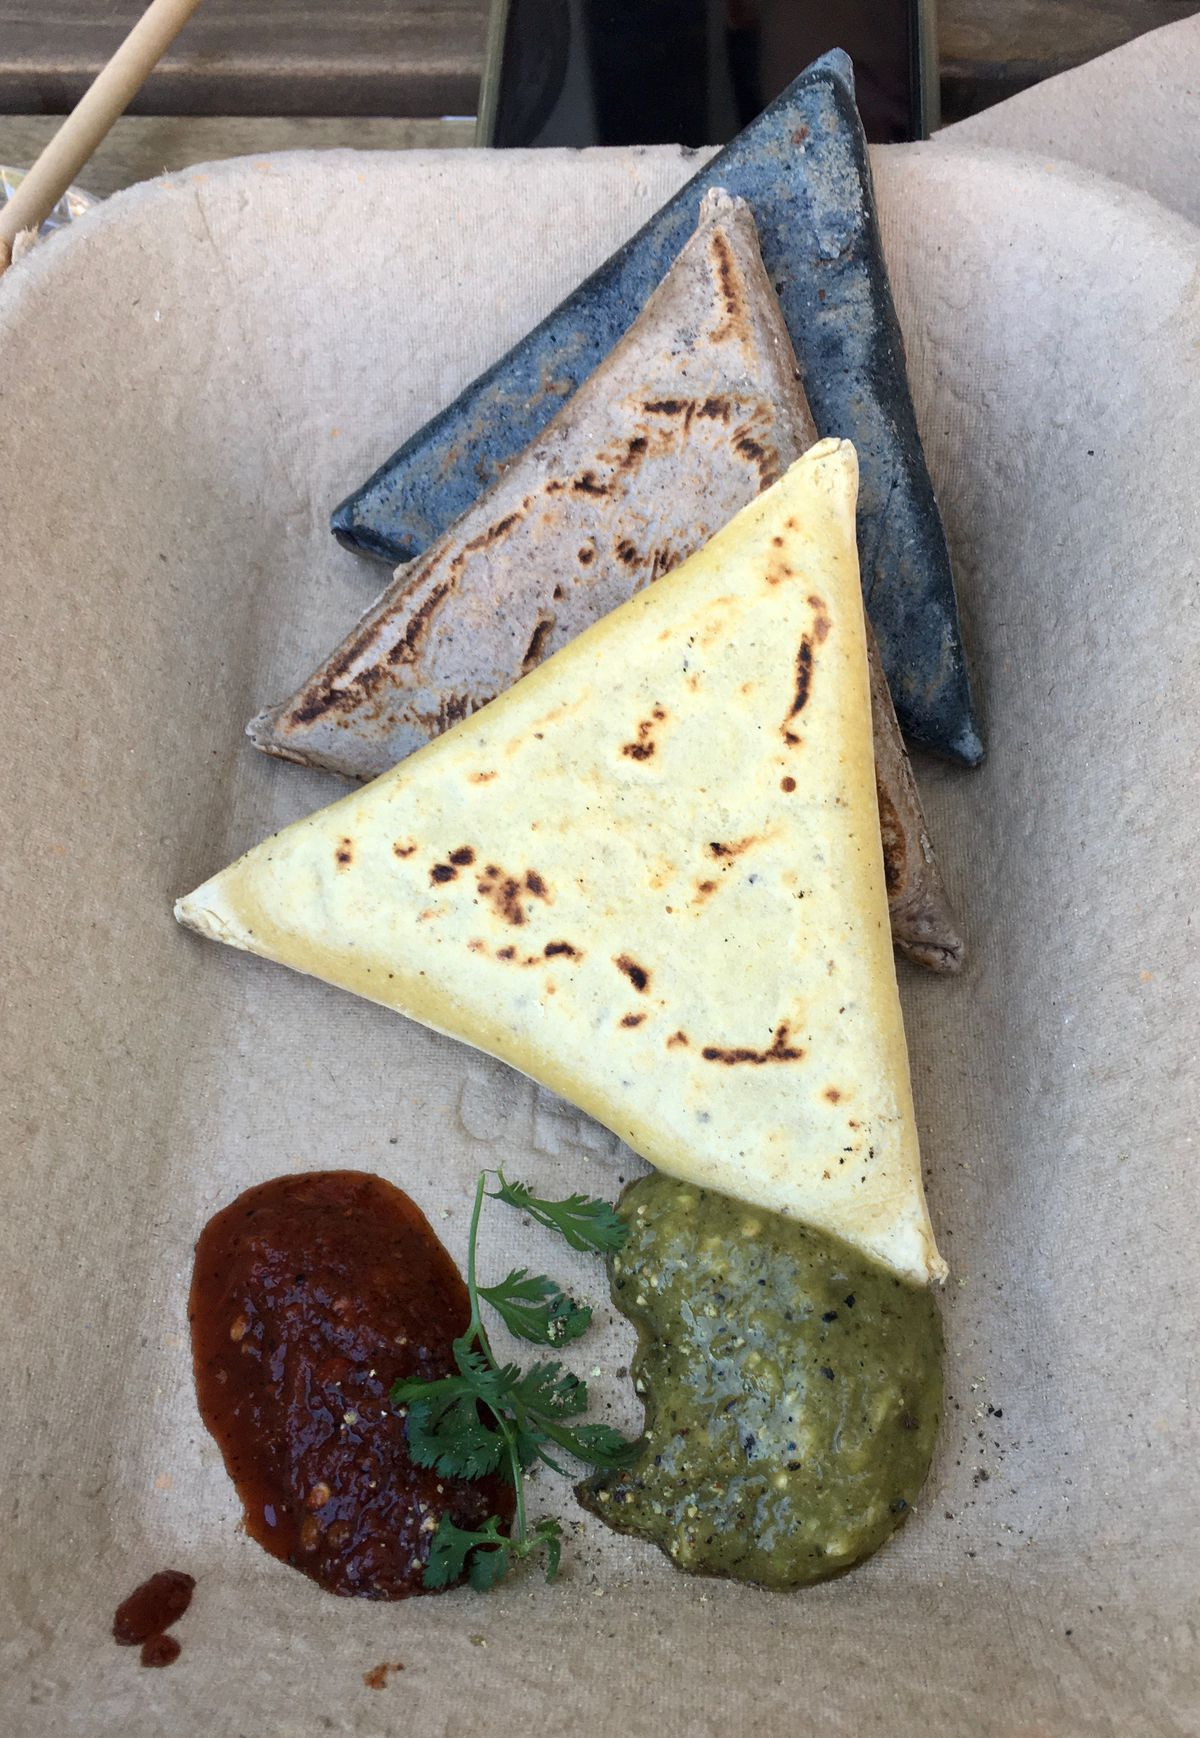 Three stuffed tortillas, shaped into triangles, sit in a cardboard to-go box beside pools of green and dark red salsa